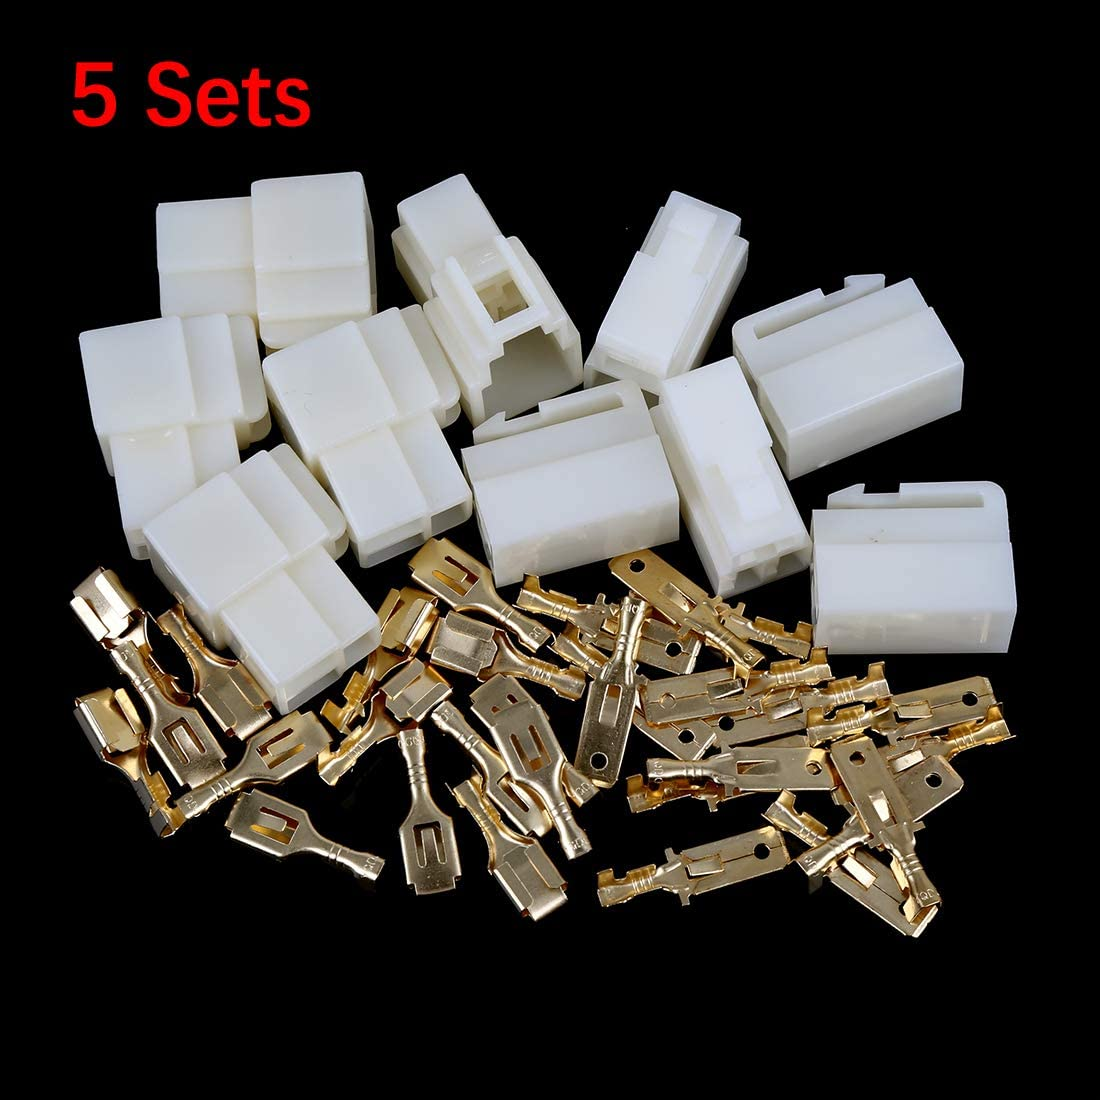 X AUTOHAUX 5 Sets 6.3mm 4 Pin Car Electrical Wire Connector Male Female Terminal Housing